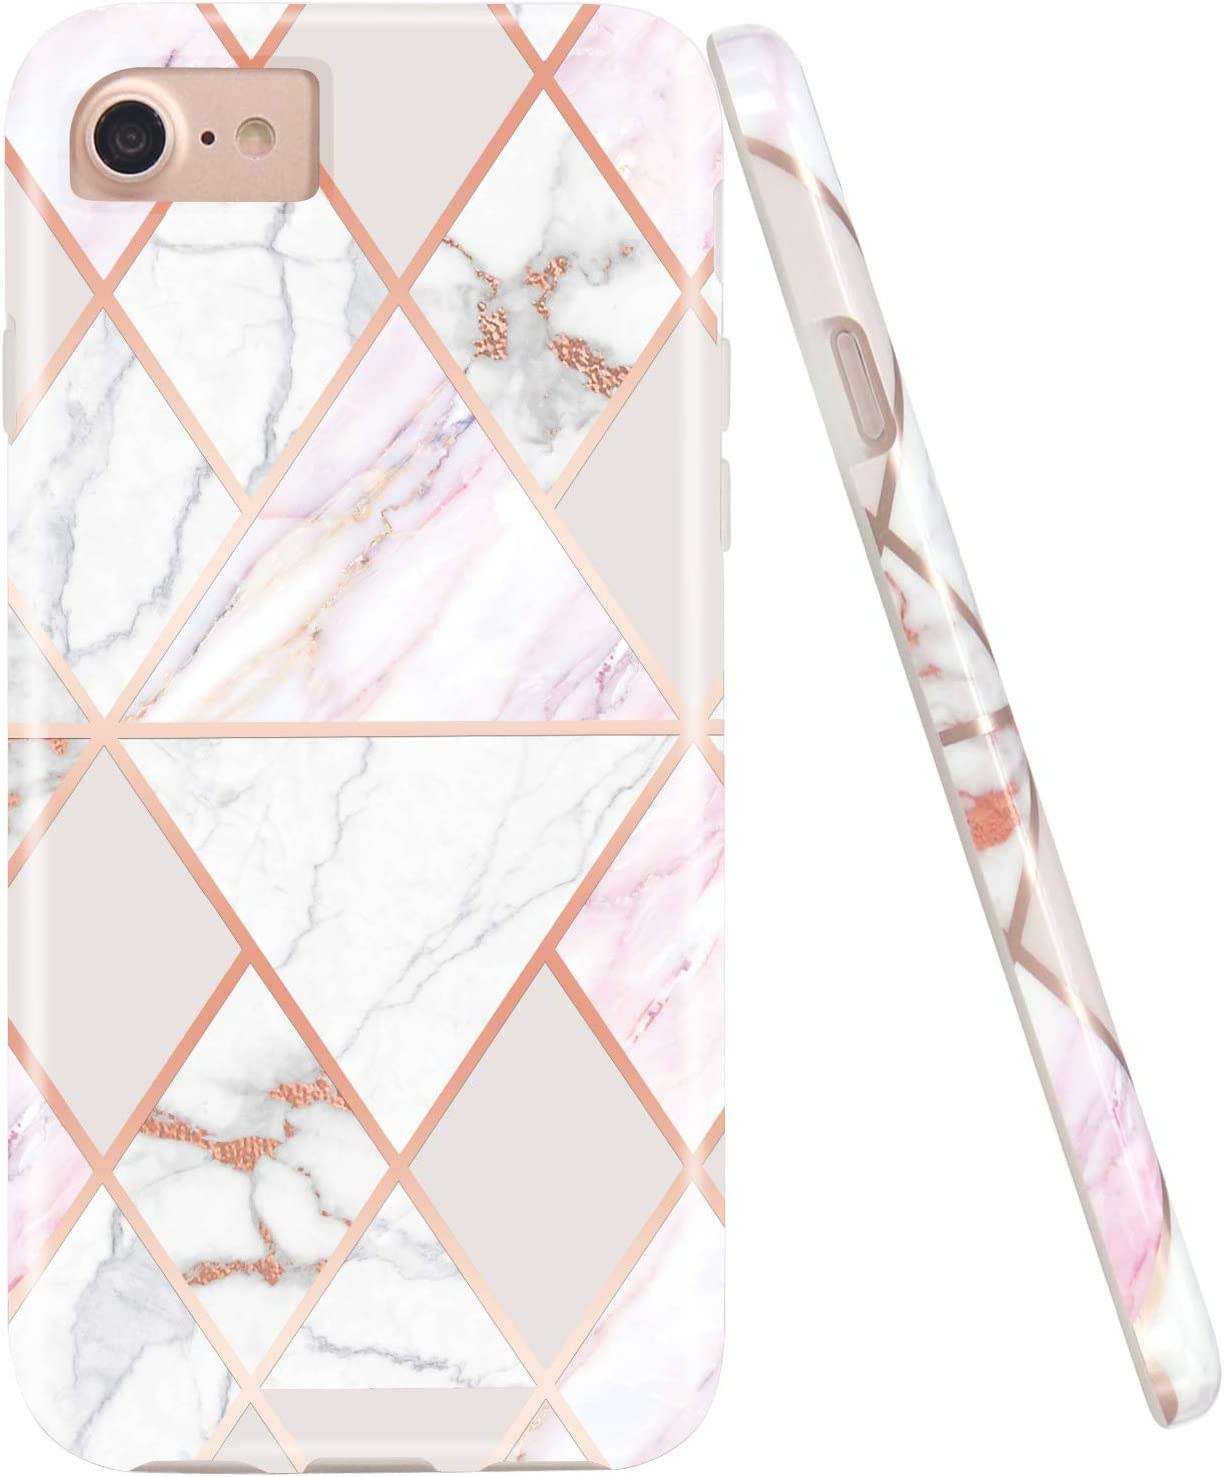 JAHOLAN Shiny Rose Gold Geometric Pink Marble Design Clear Bumper Glossy TPU Soft Rubber Silicone Cover Phone Case Compatible with iPhone 7 iPhone 8 iPhone 6 6S iPhone SE 2020